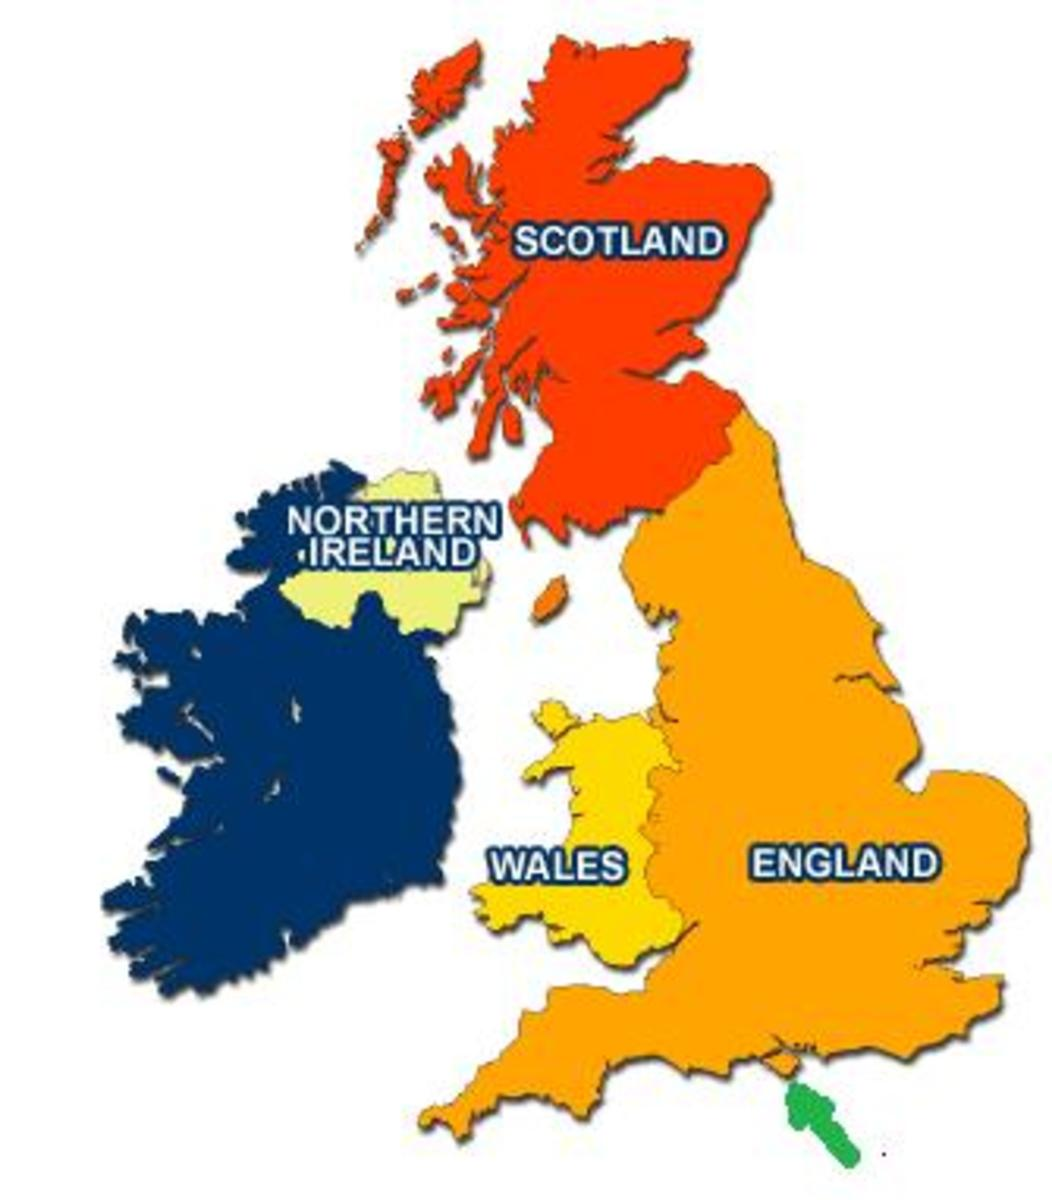 England, Great Britain, the UK, What Does It All Mean!?